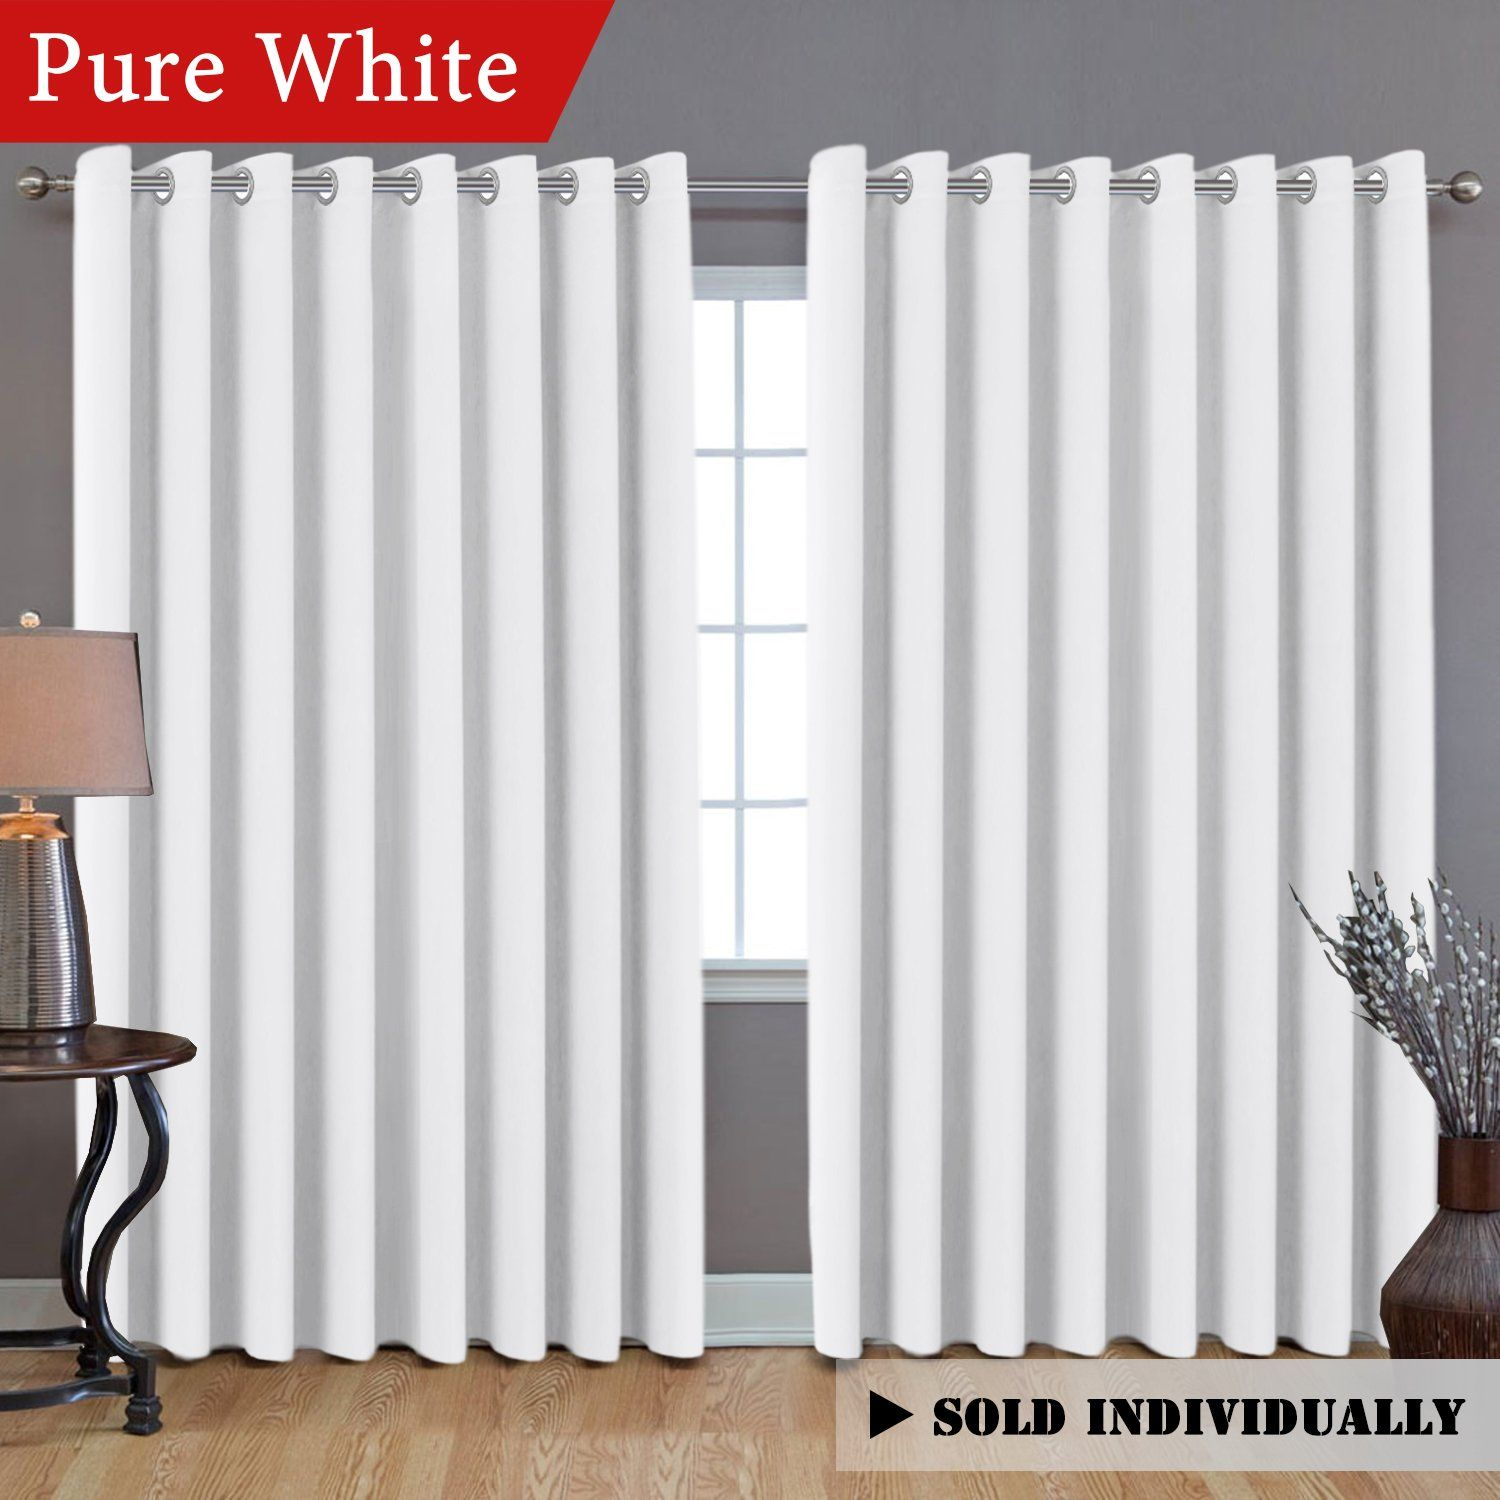 panels tag curtainsblackout picture grommet wonderful off and curtains drapes blackout white of touch class curtain full concept whiteoff in size thermal